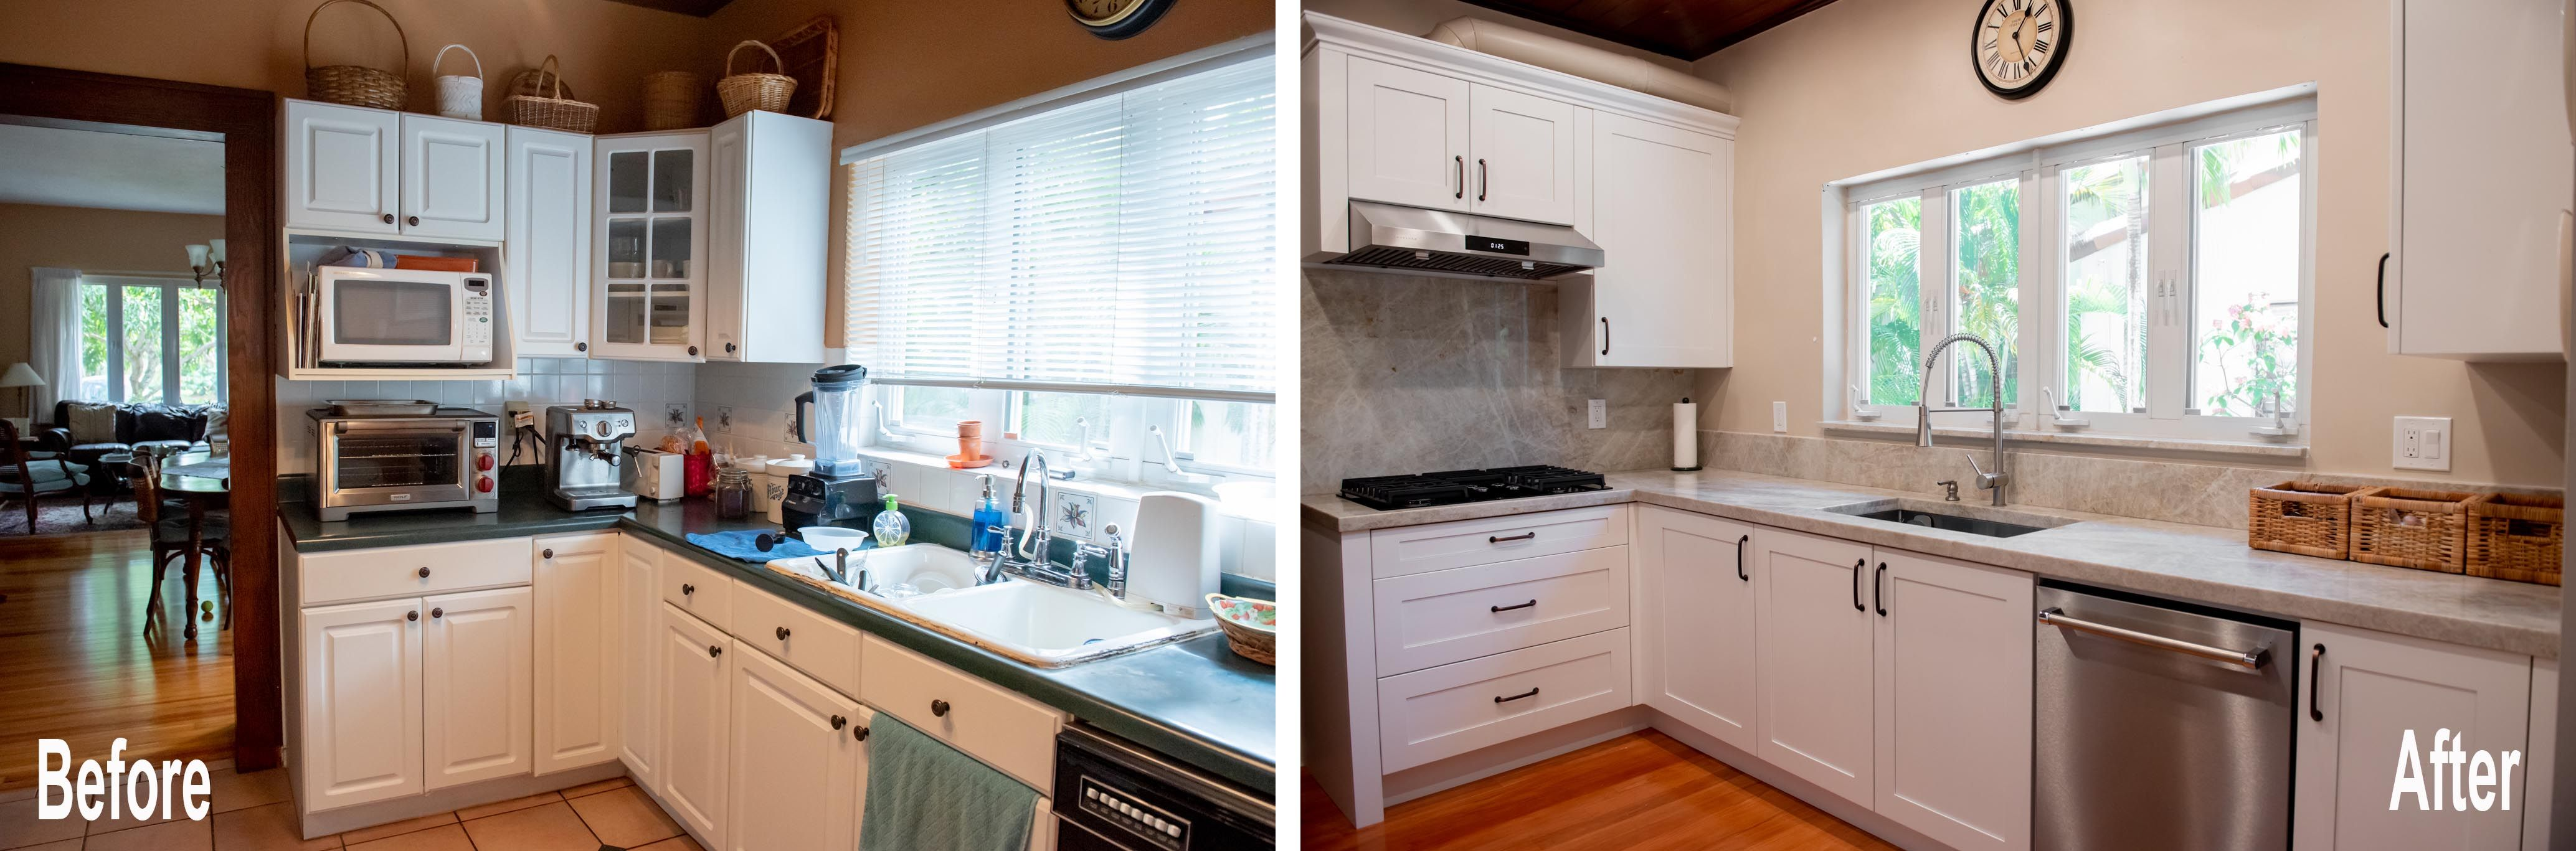 Traditional Kitchen Update Done In A White Paint In 2020 Kitchen Remodeling Projects Home Kitchens Kitchen Remodel